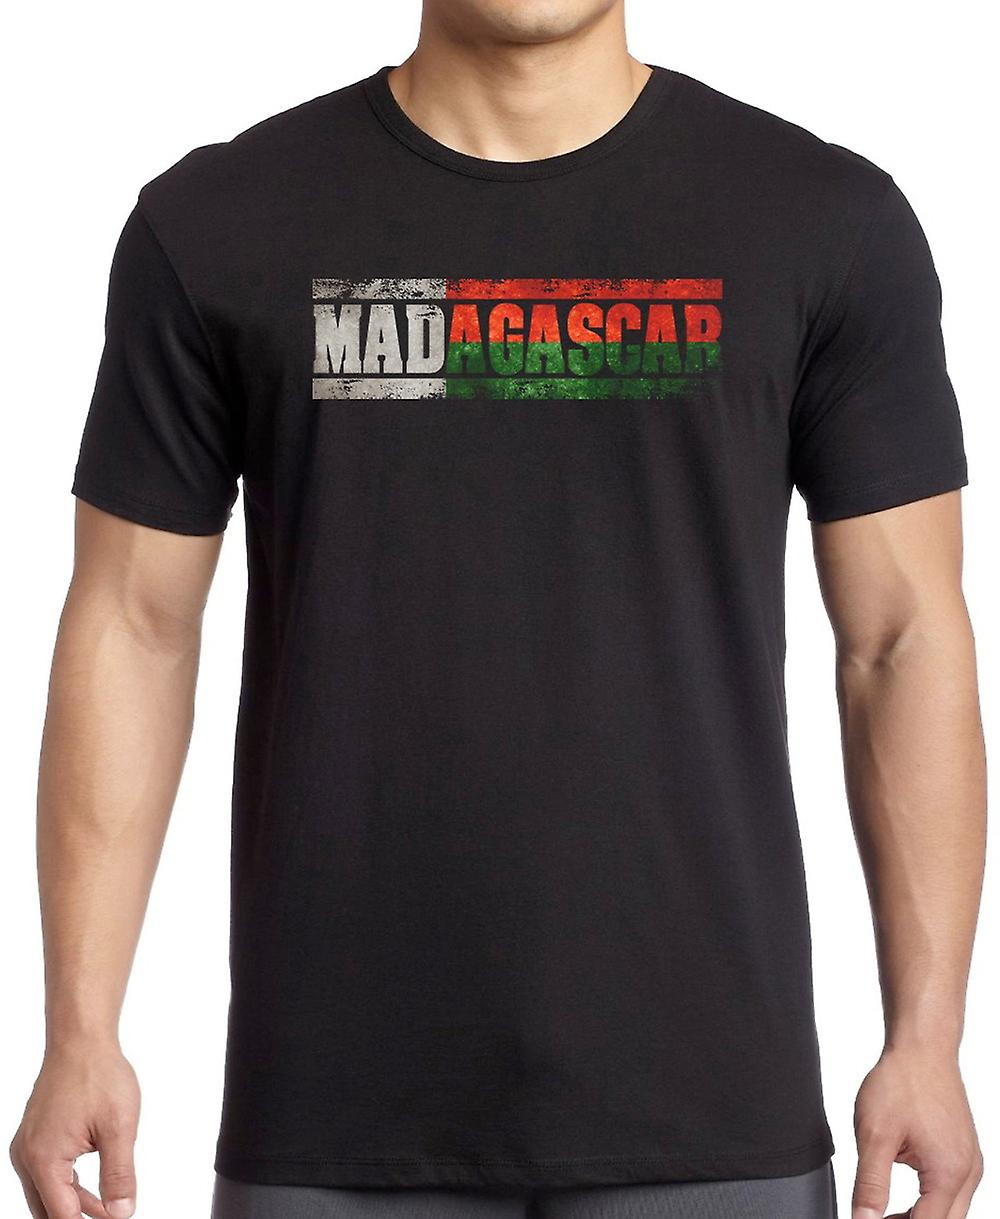 Madagascar_ flagga - ord barn T Shirt